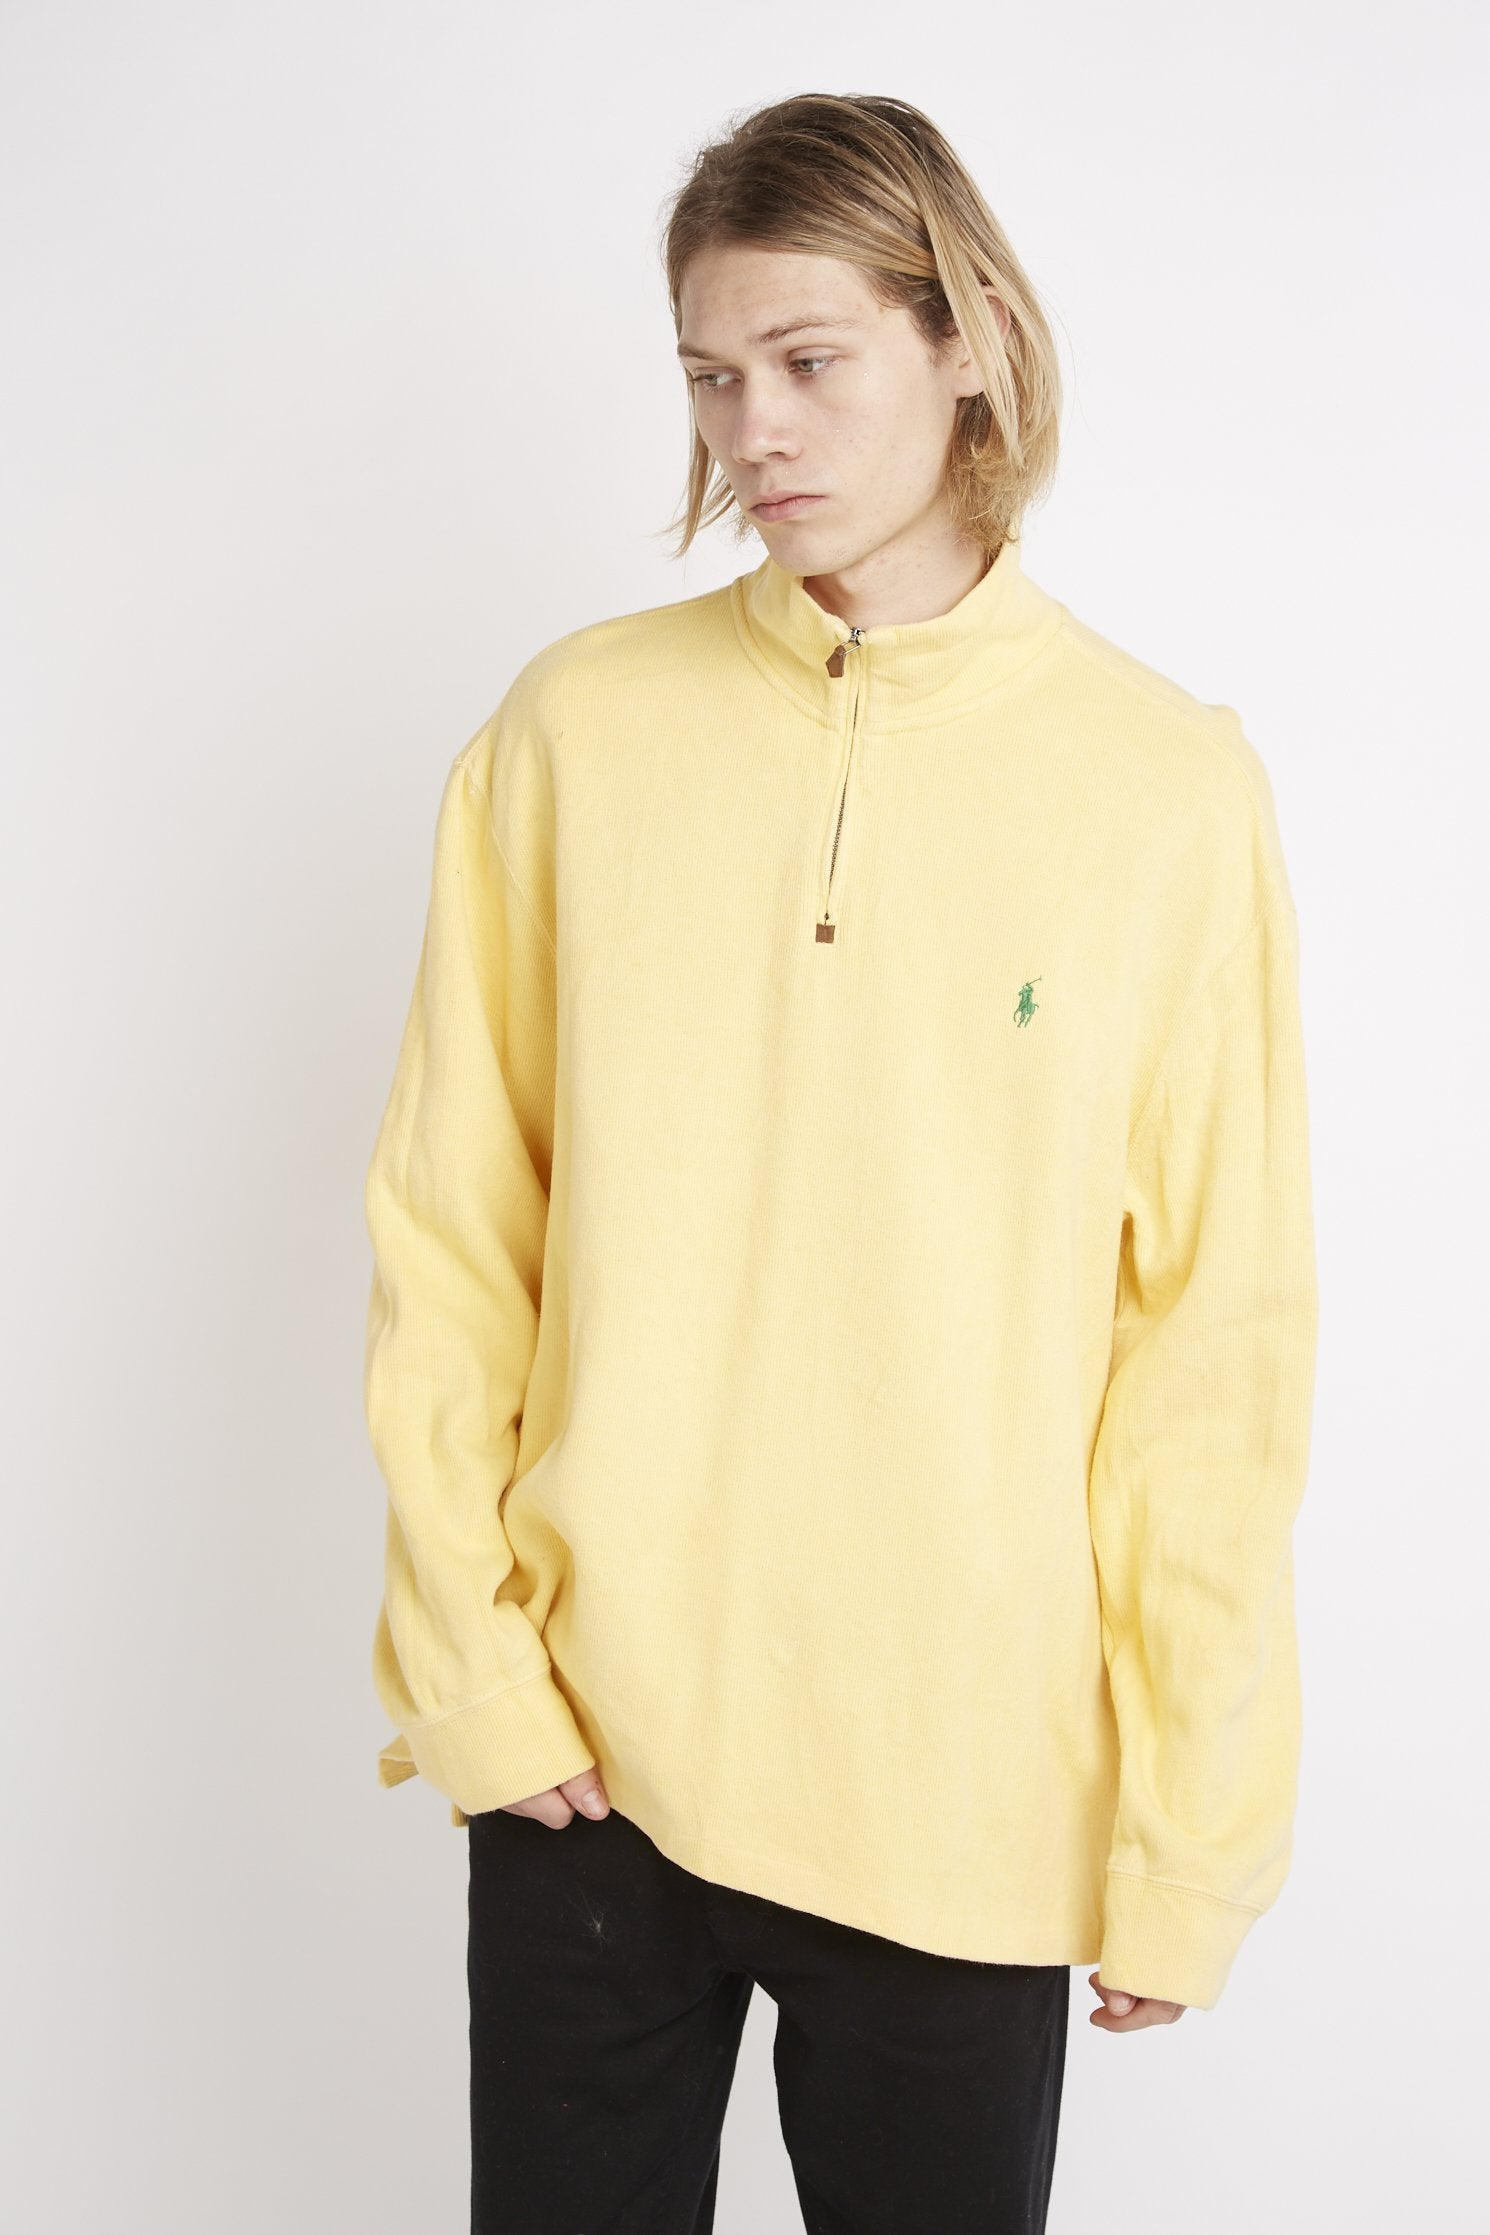 Ralph Lauren 1/4 Zips from £30